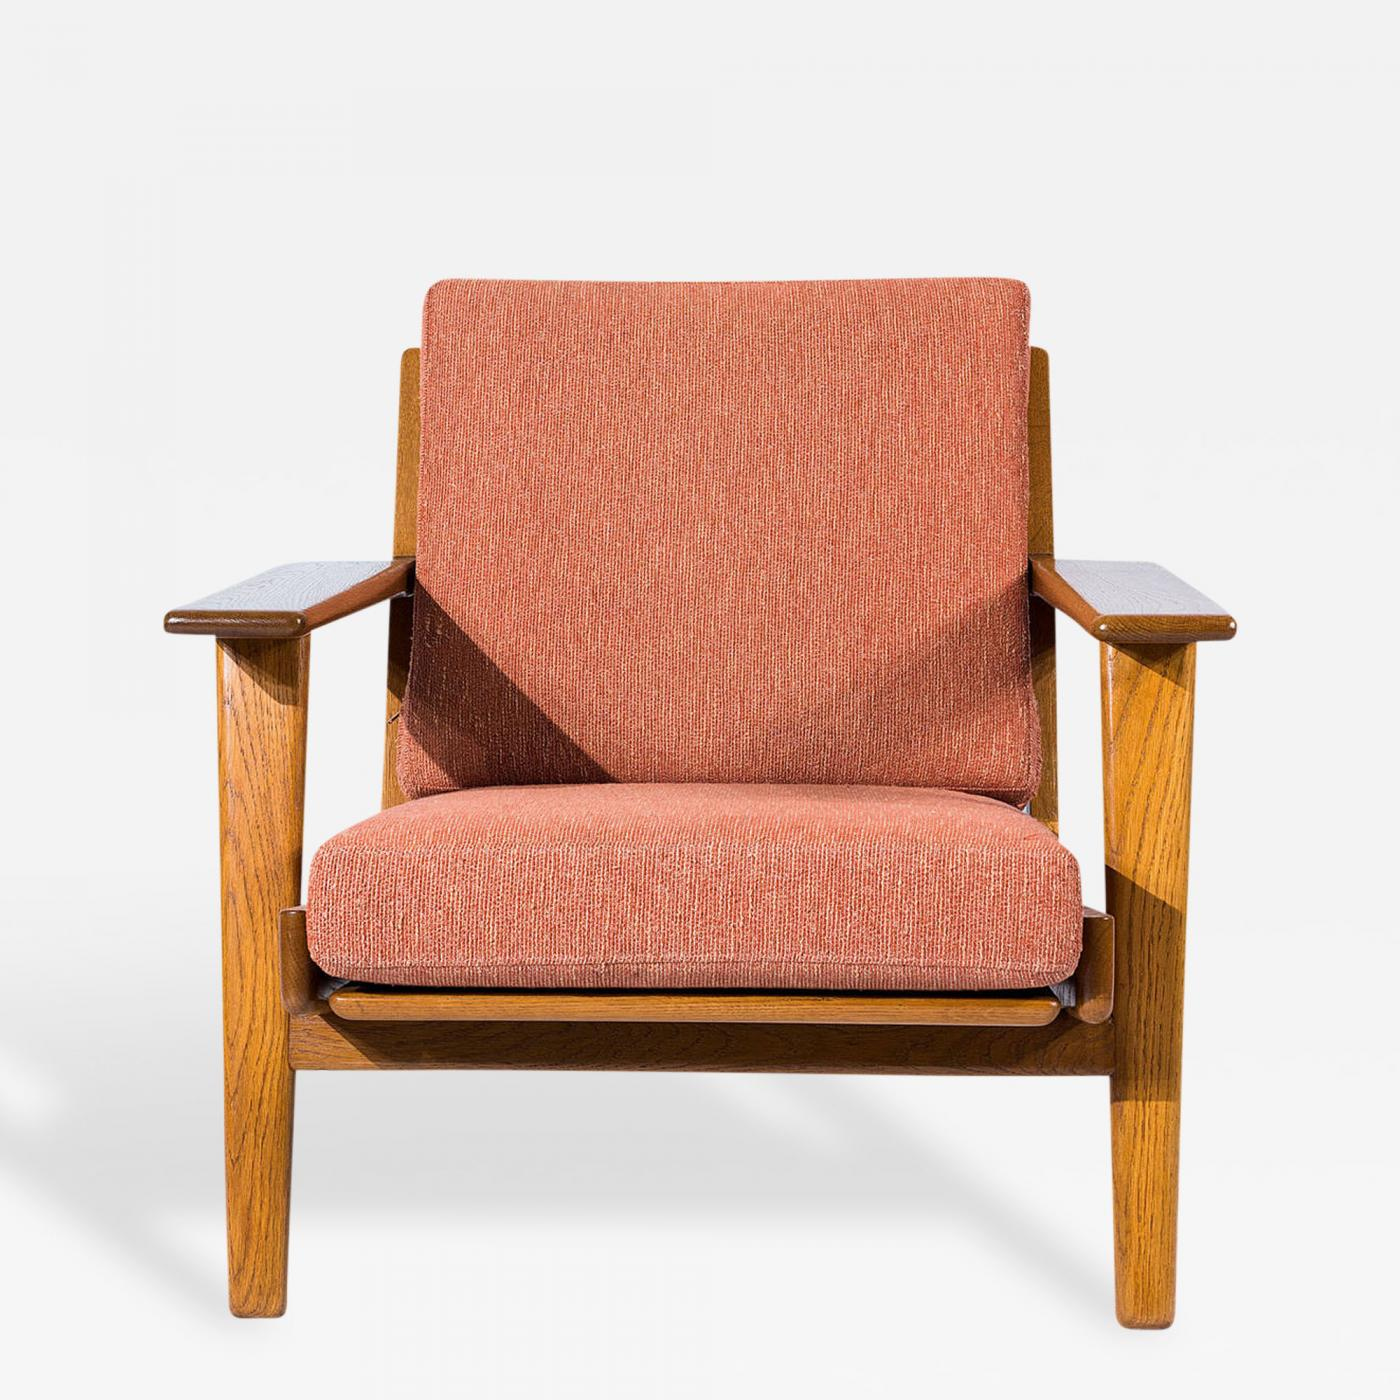 Hans wegner lounge chair - Hans Wegner Hans Wegner Ge 290 Lounge Chair Click On Image To Enlarge